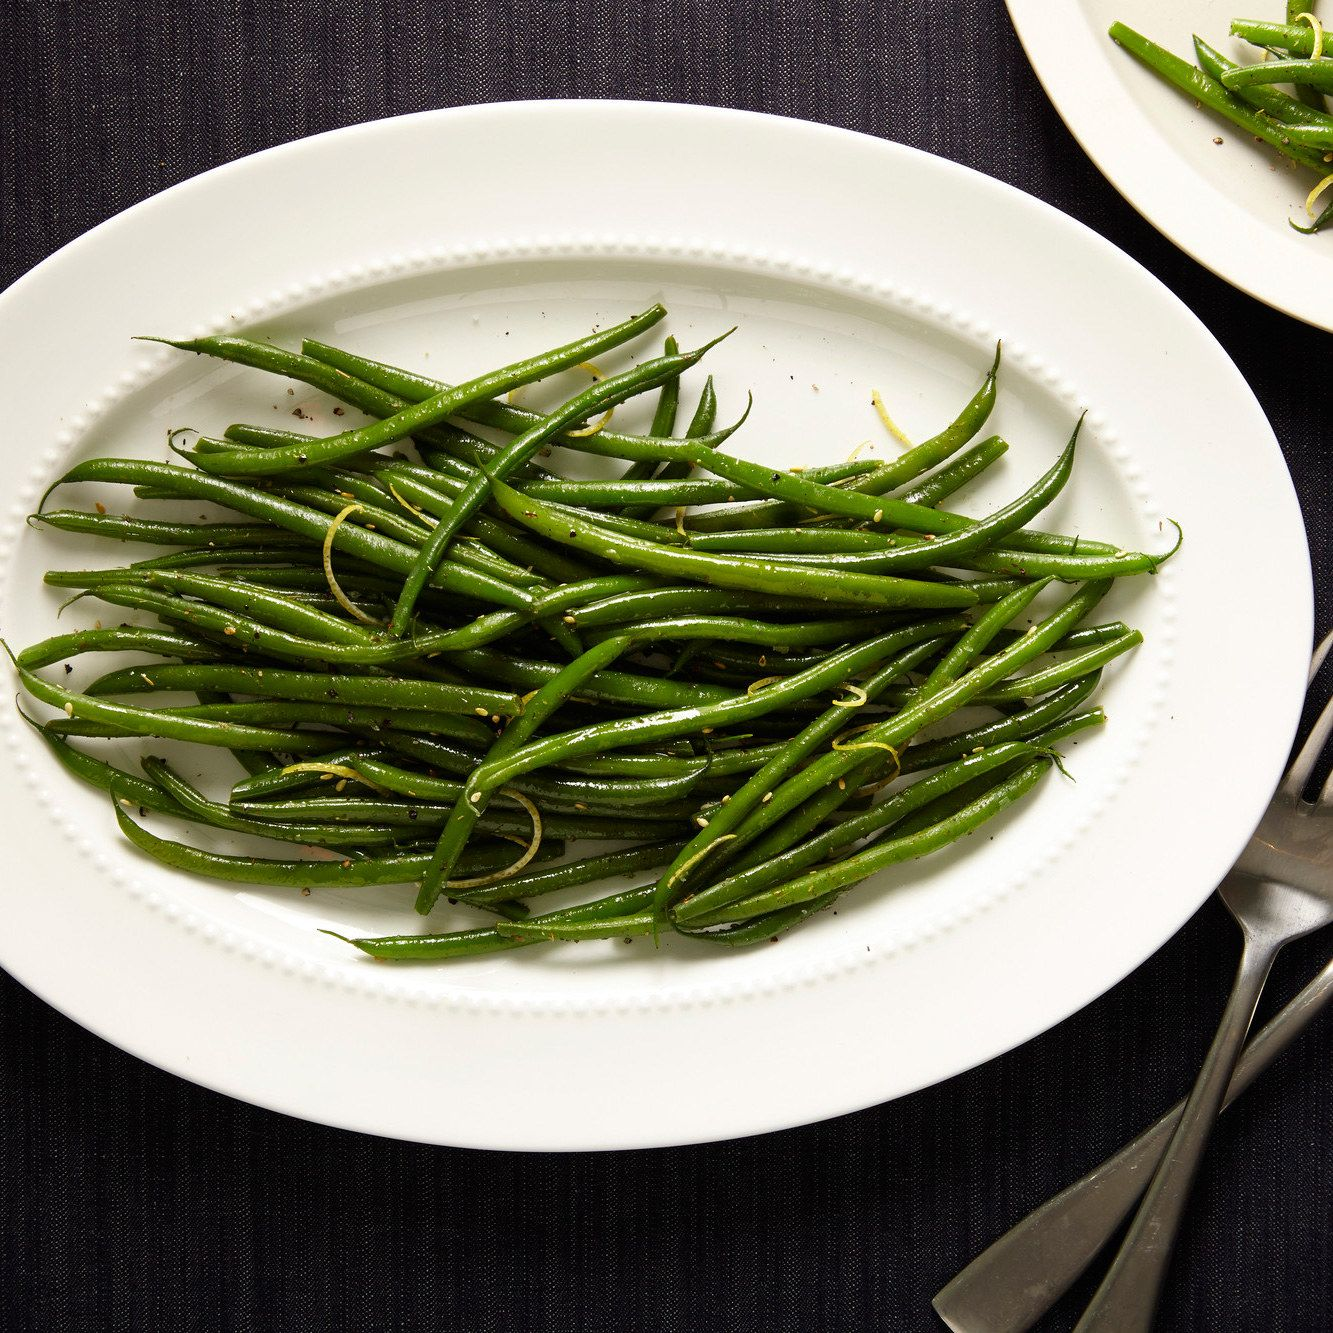 Discussion on this topic: Green Beans with Lemon Butter and Frizzled , green-beans-with-lemon-butter-and-frizzled/